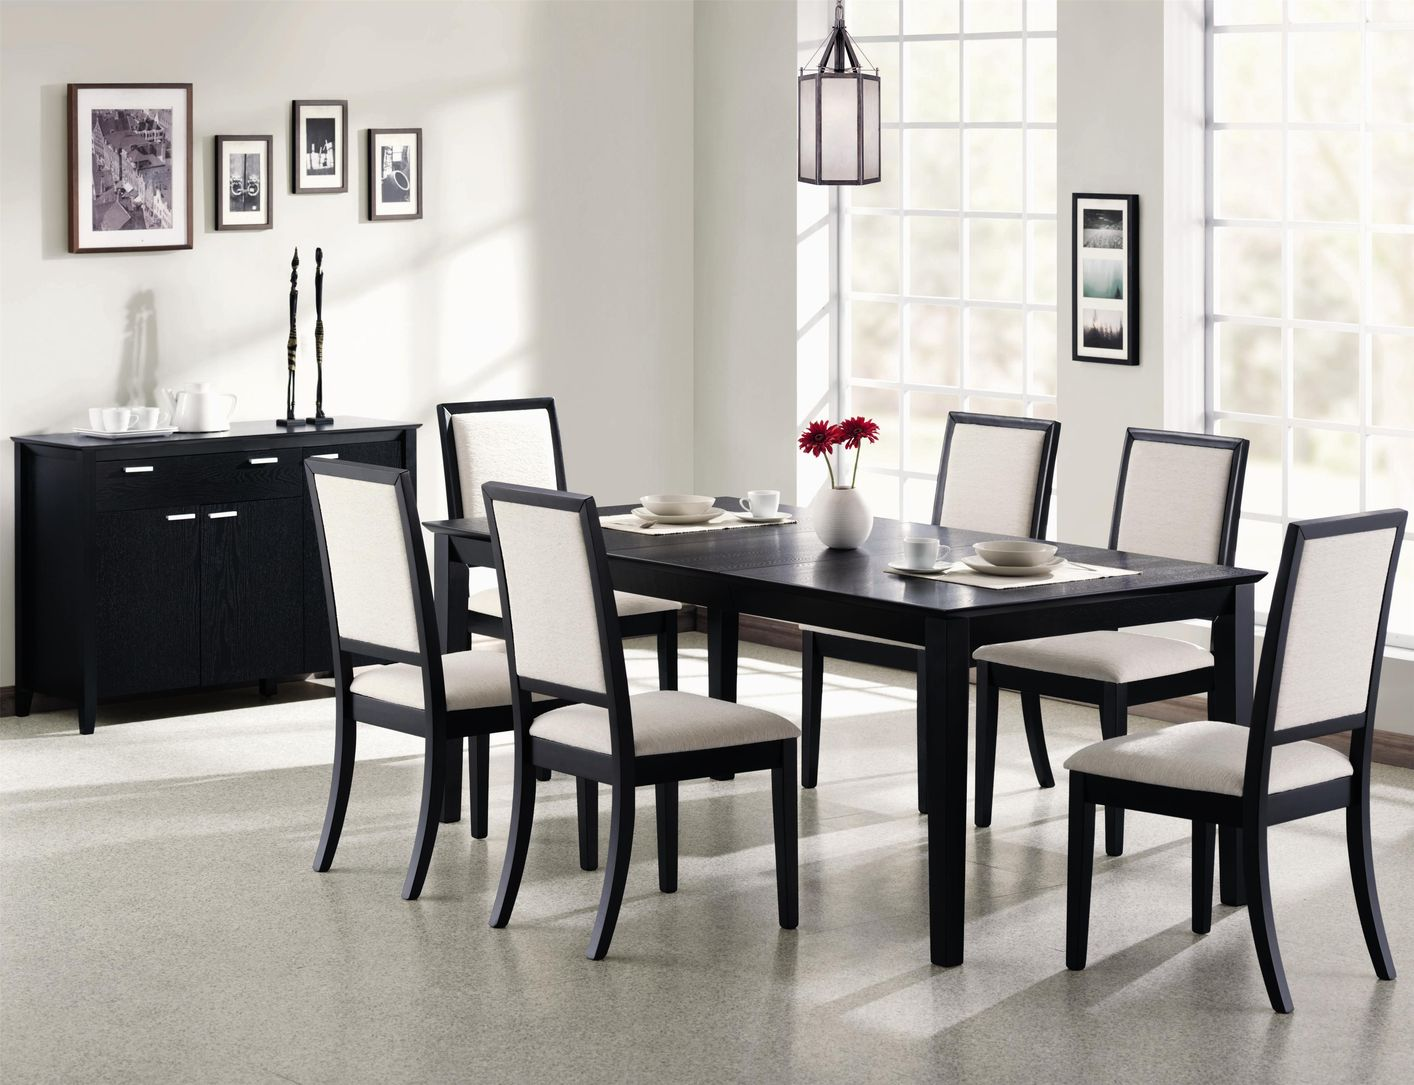 black dining table set Louise Black Wood Dining Table Set   Steal A Sofa Furniture Outlet  black dining table set